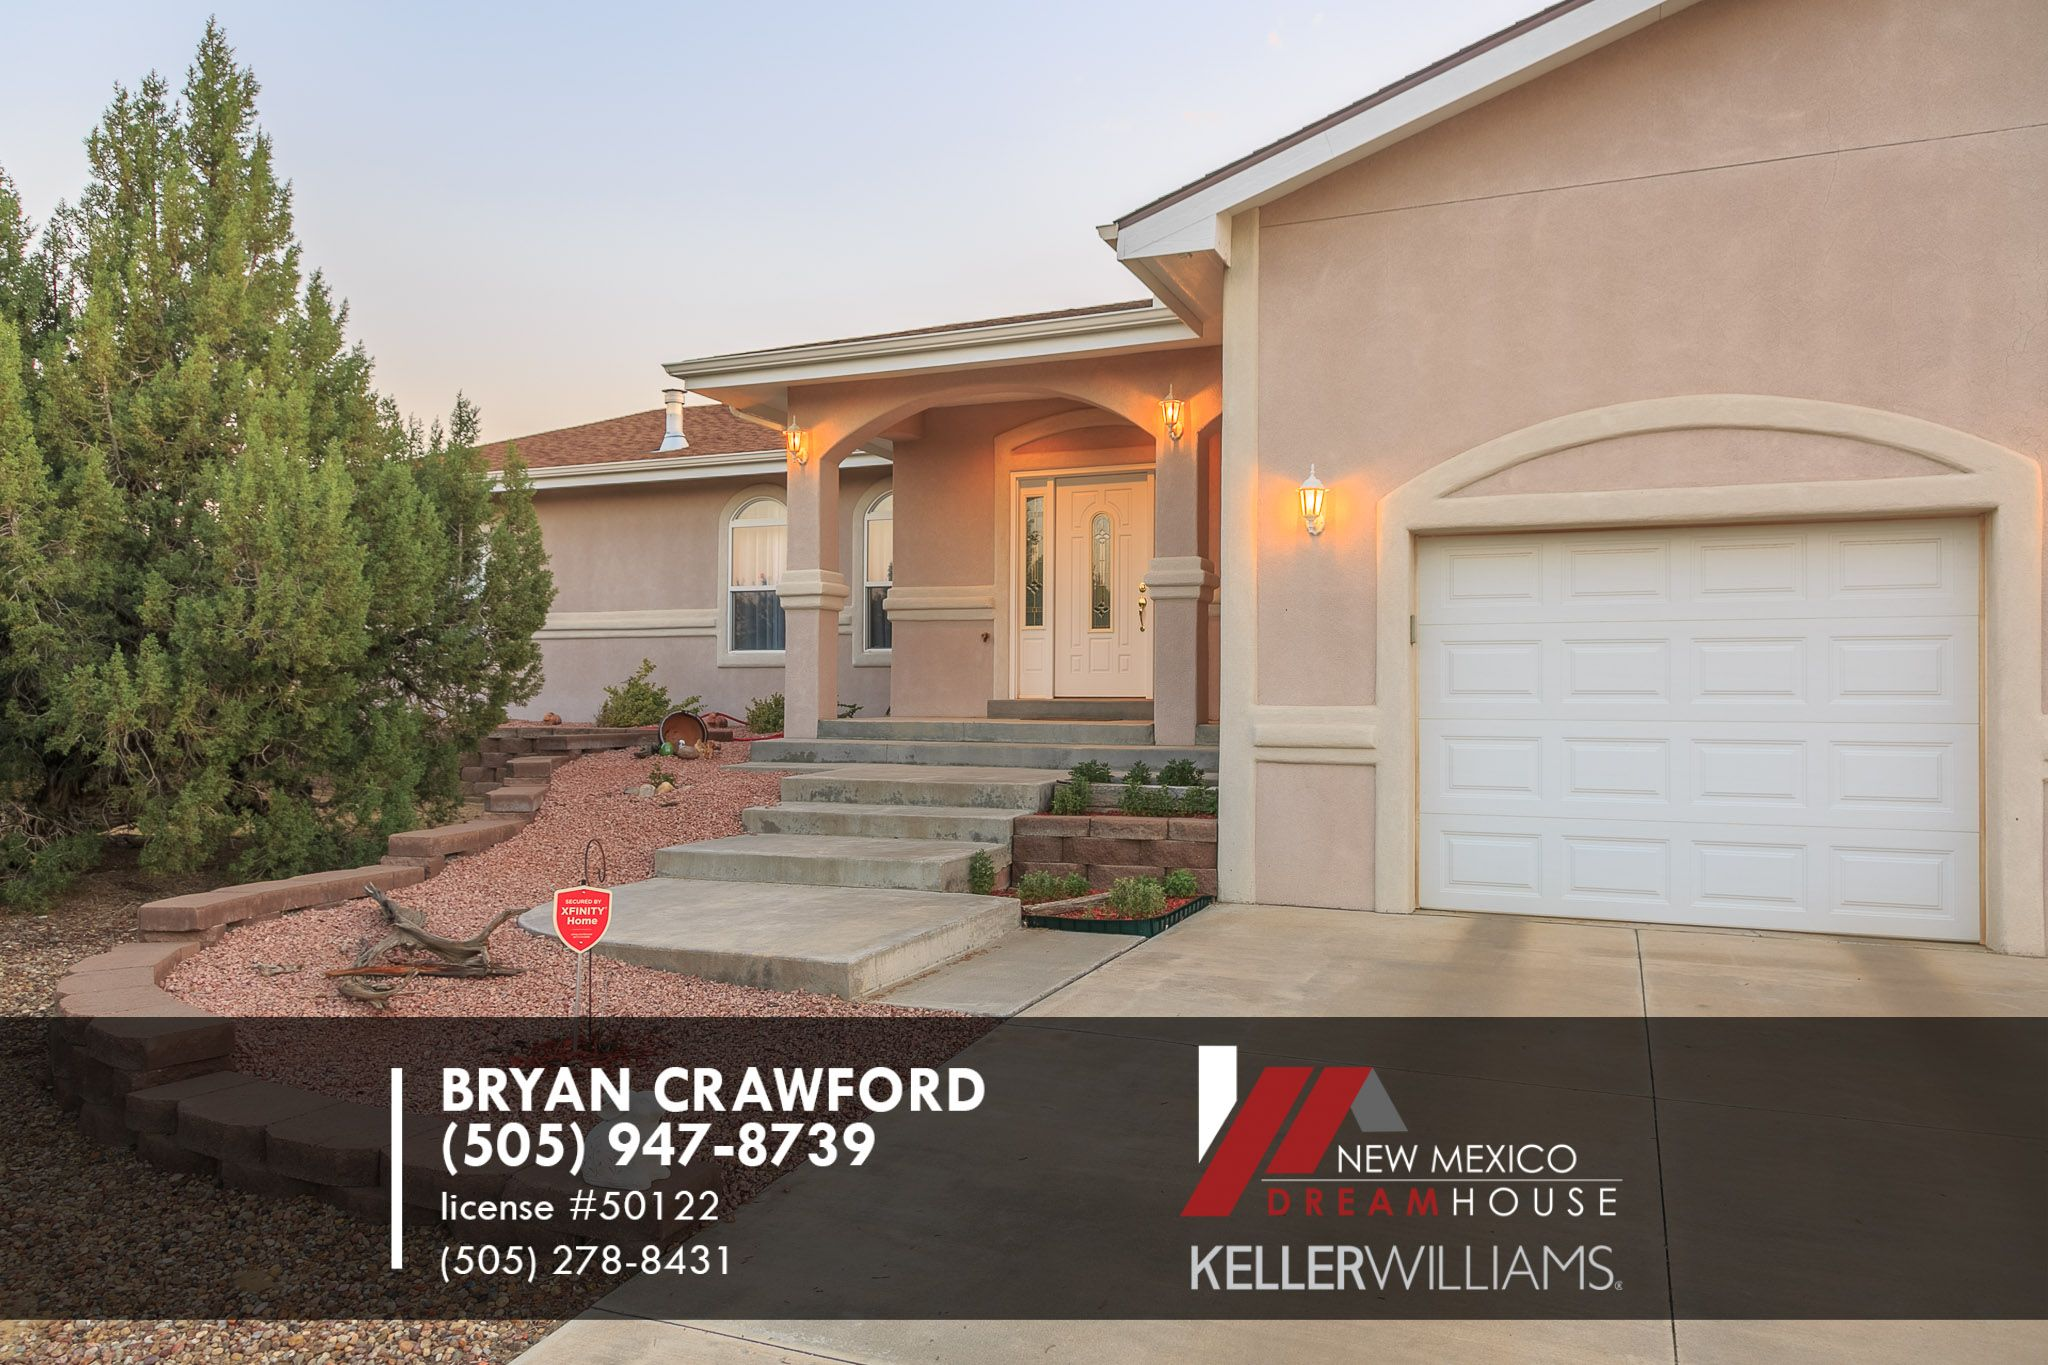 This Is A Must See A Beautiful 4 Bedroom 2 Bath Home Located In The Desirable Foothills Area This Home Features Vaulted Ceili With Images Dream House House Styles House